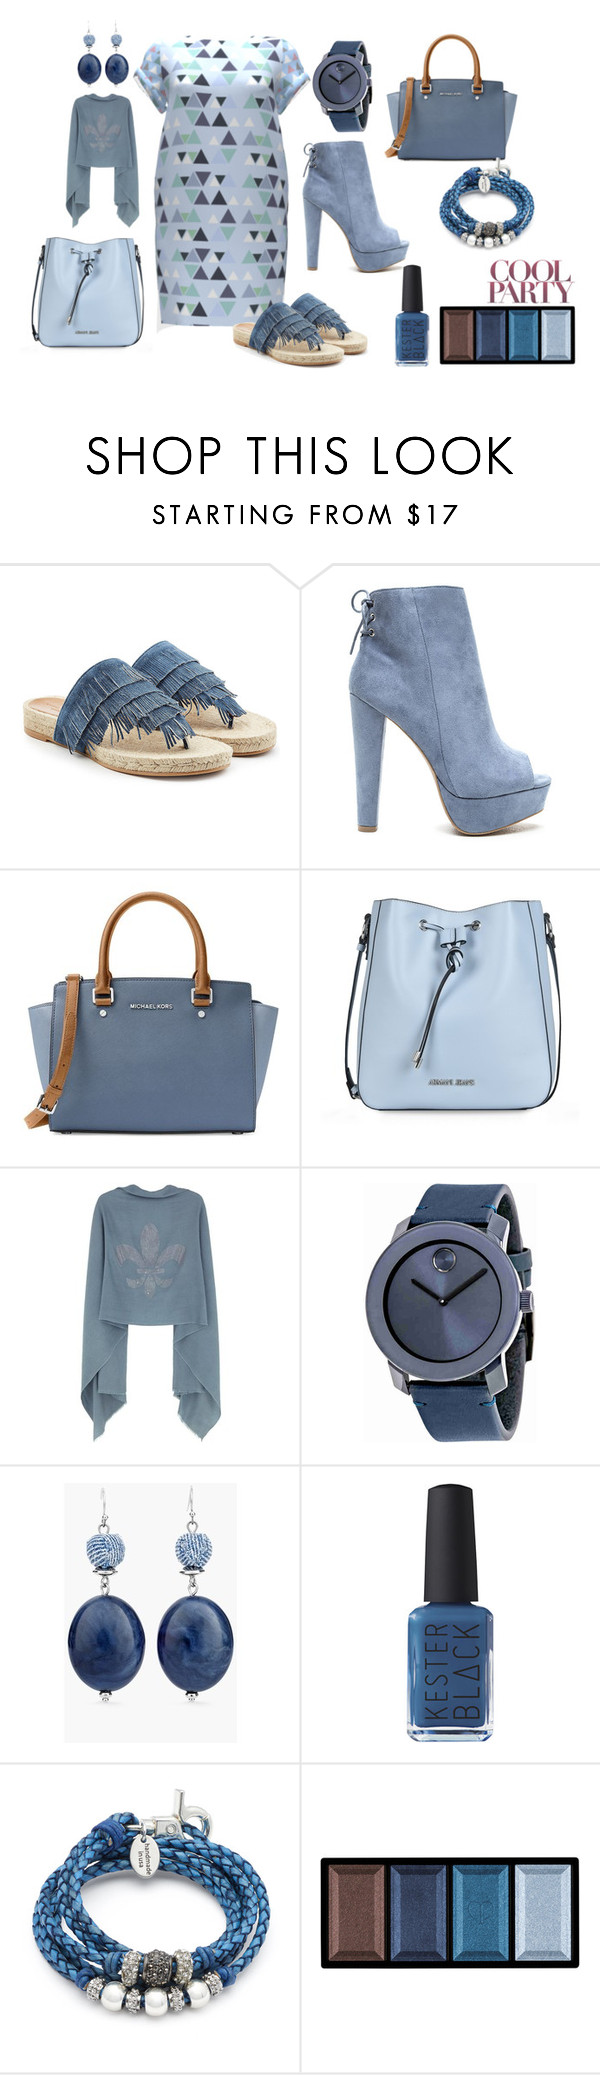 Cool Party by kelly-floramoon-legg on Polyvore featuring Sonia Rykiel, MICHAEL Michael Kors, Armani Jeans, Movado, Lizzy James, Chico's, Clé de Peau Beauté and Kester Black